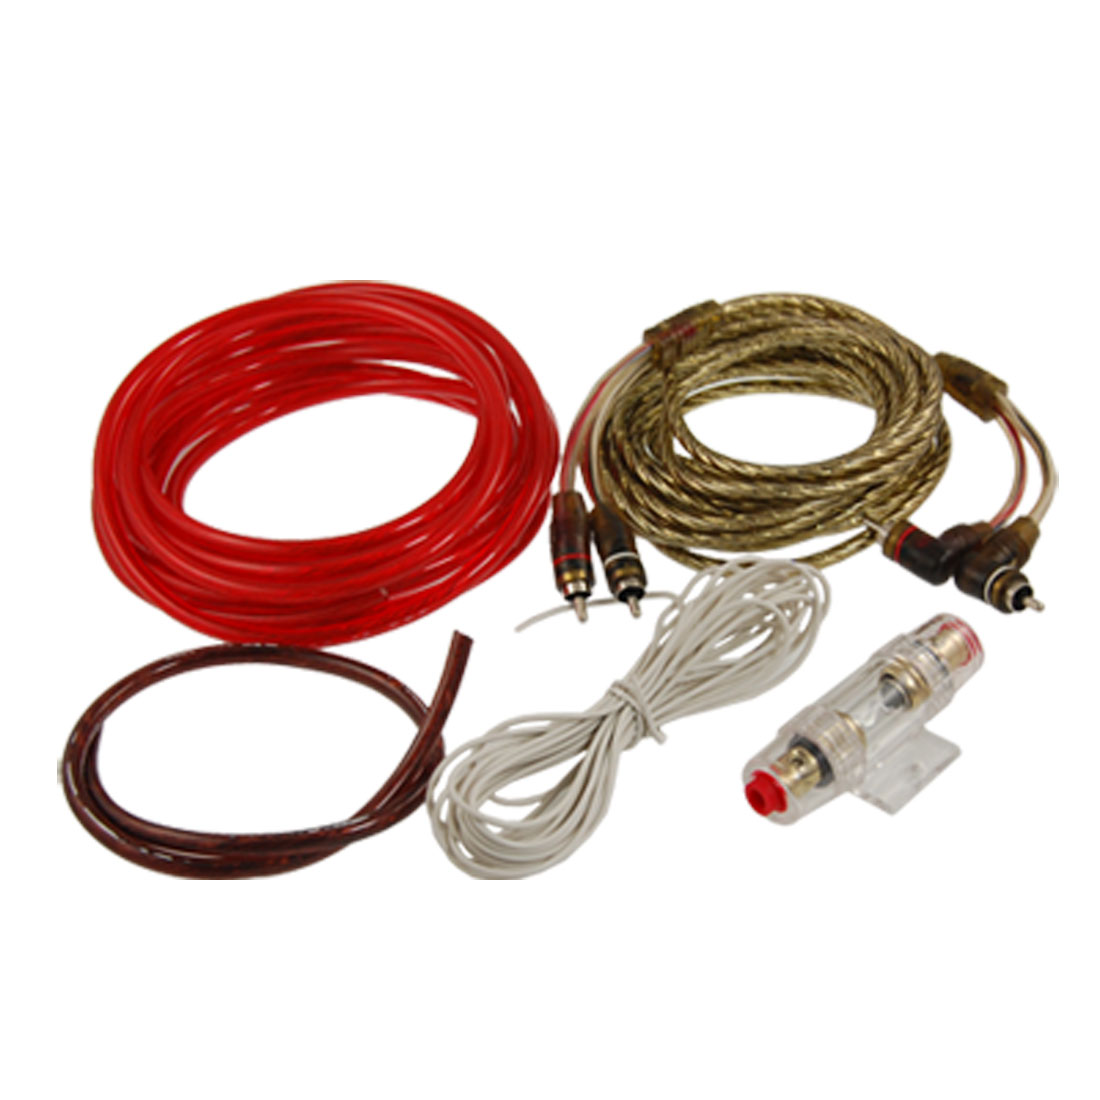 small resolution of car audio 4 pcs cables fuse holder amplifier wiring kit walmart com audio amplifier kit car audio wiring kit walmart